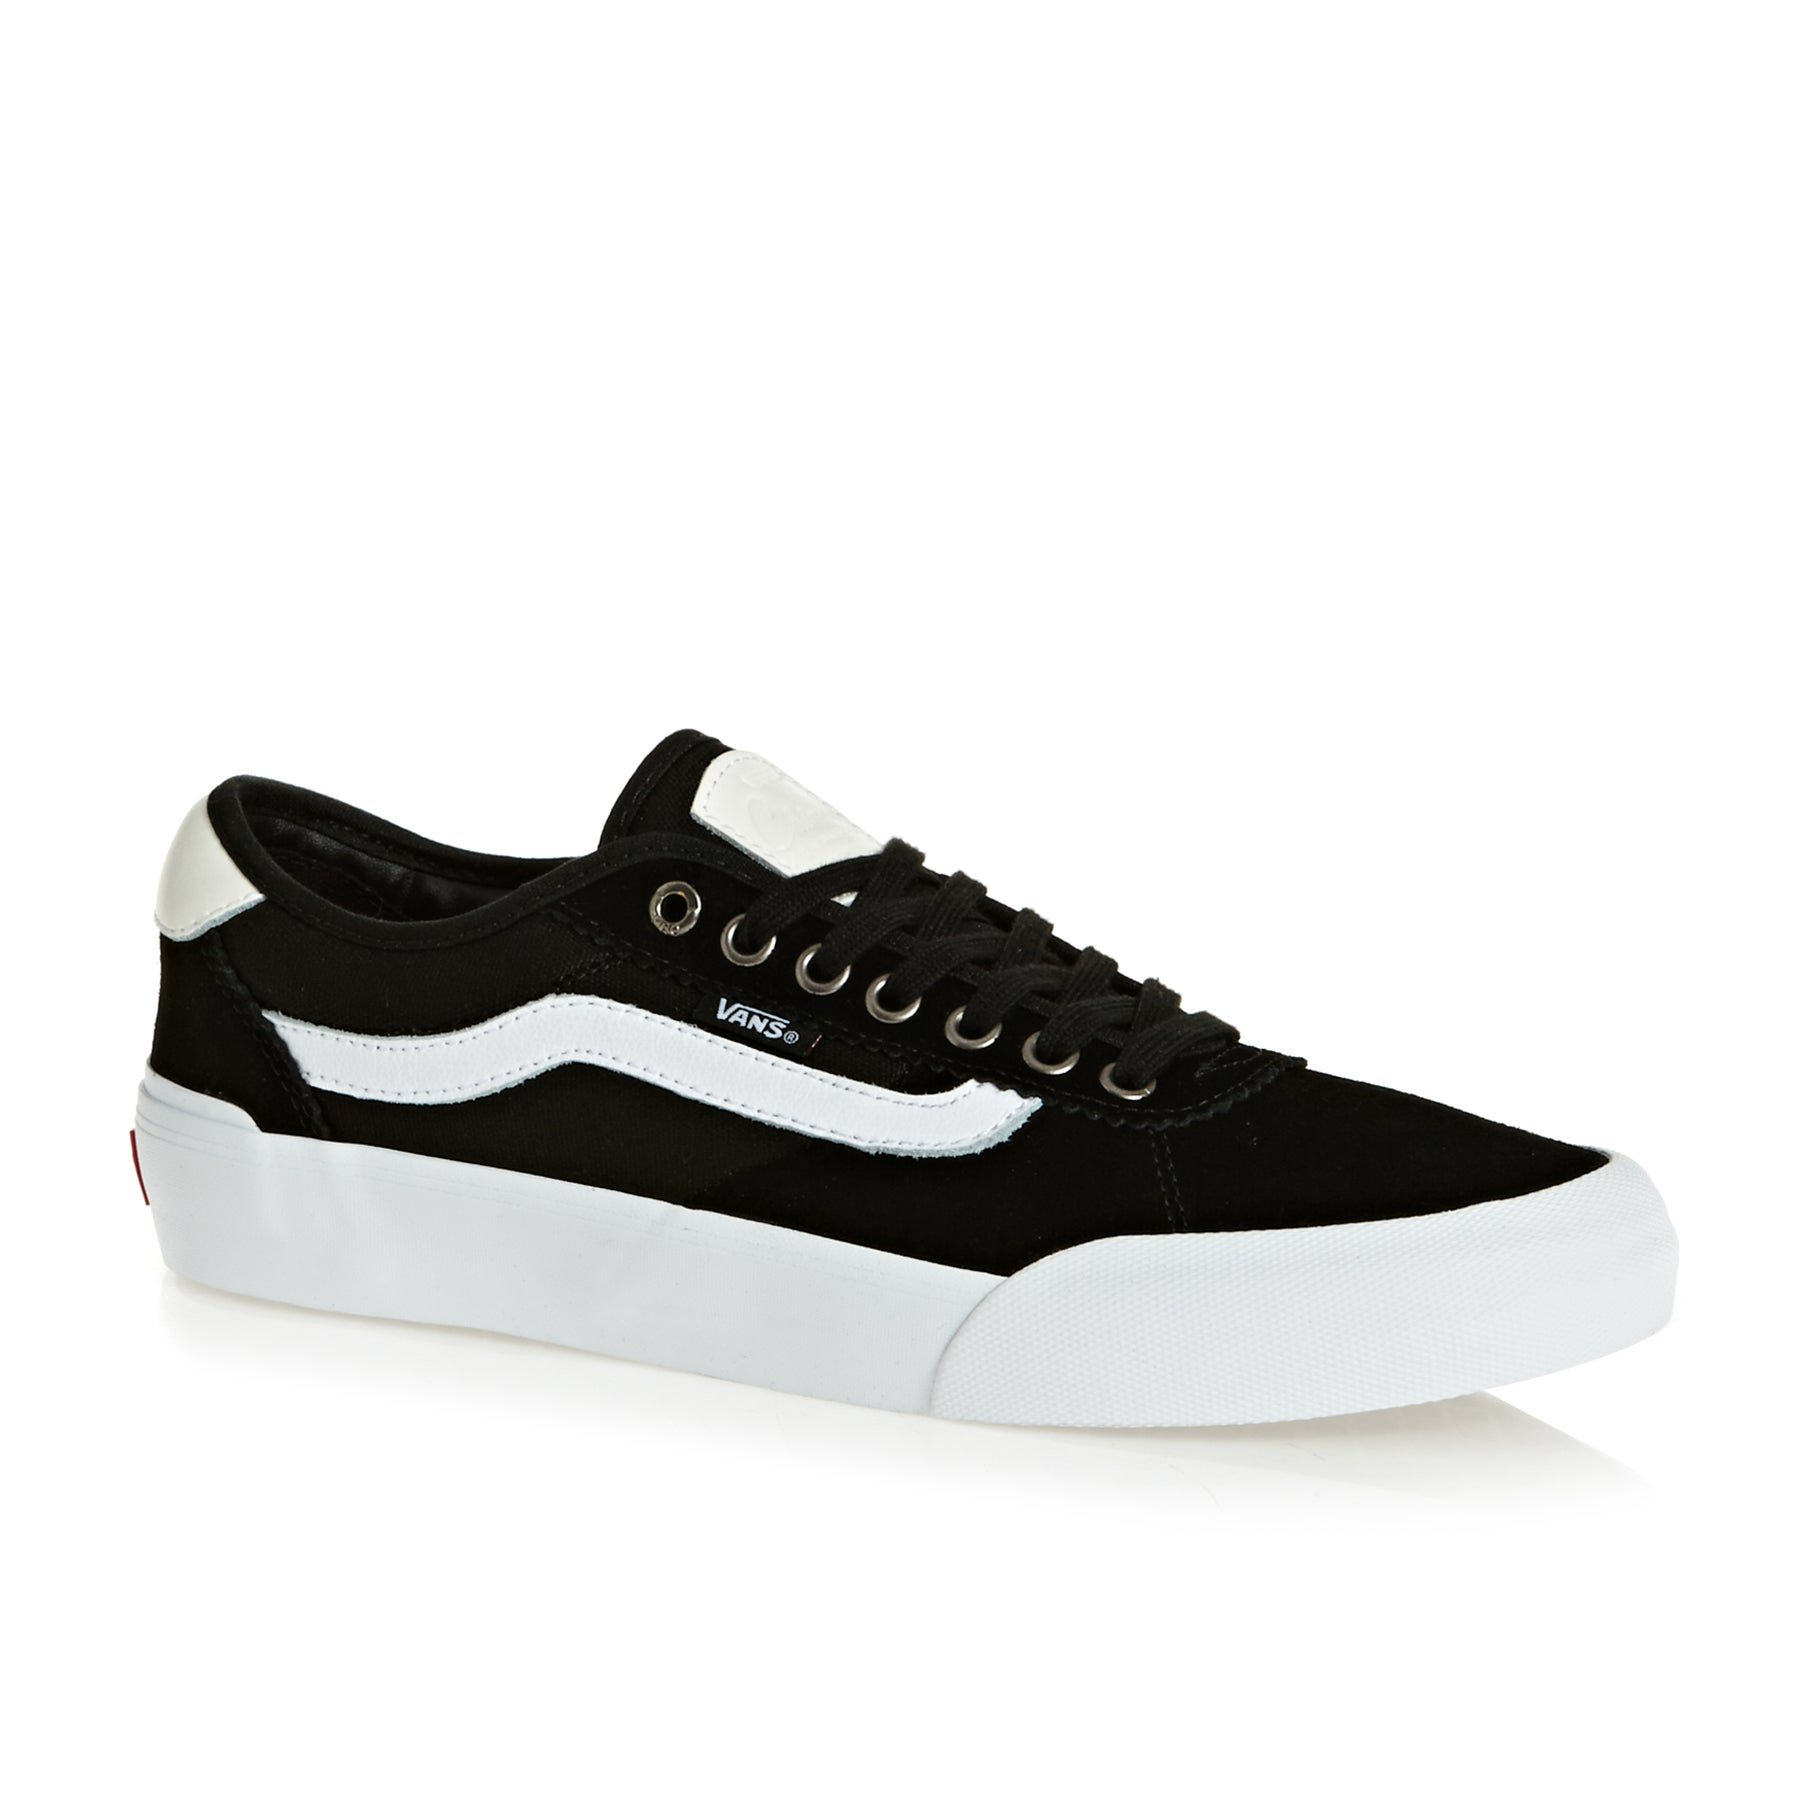 Vans Chima Pro 2 Shoes